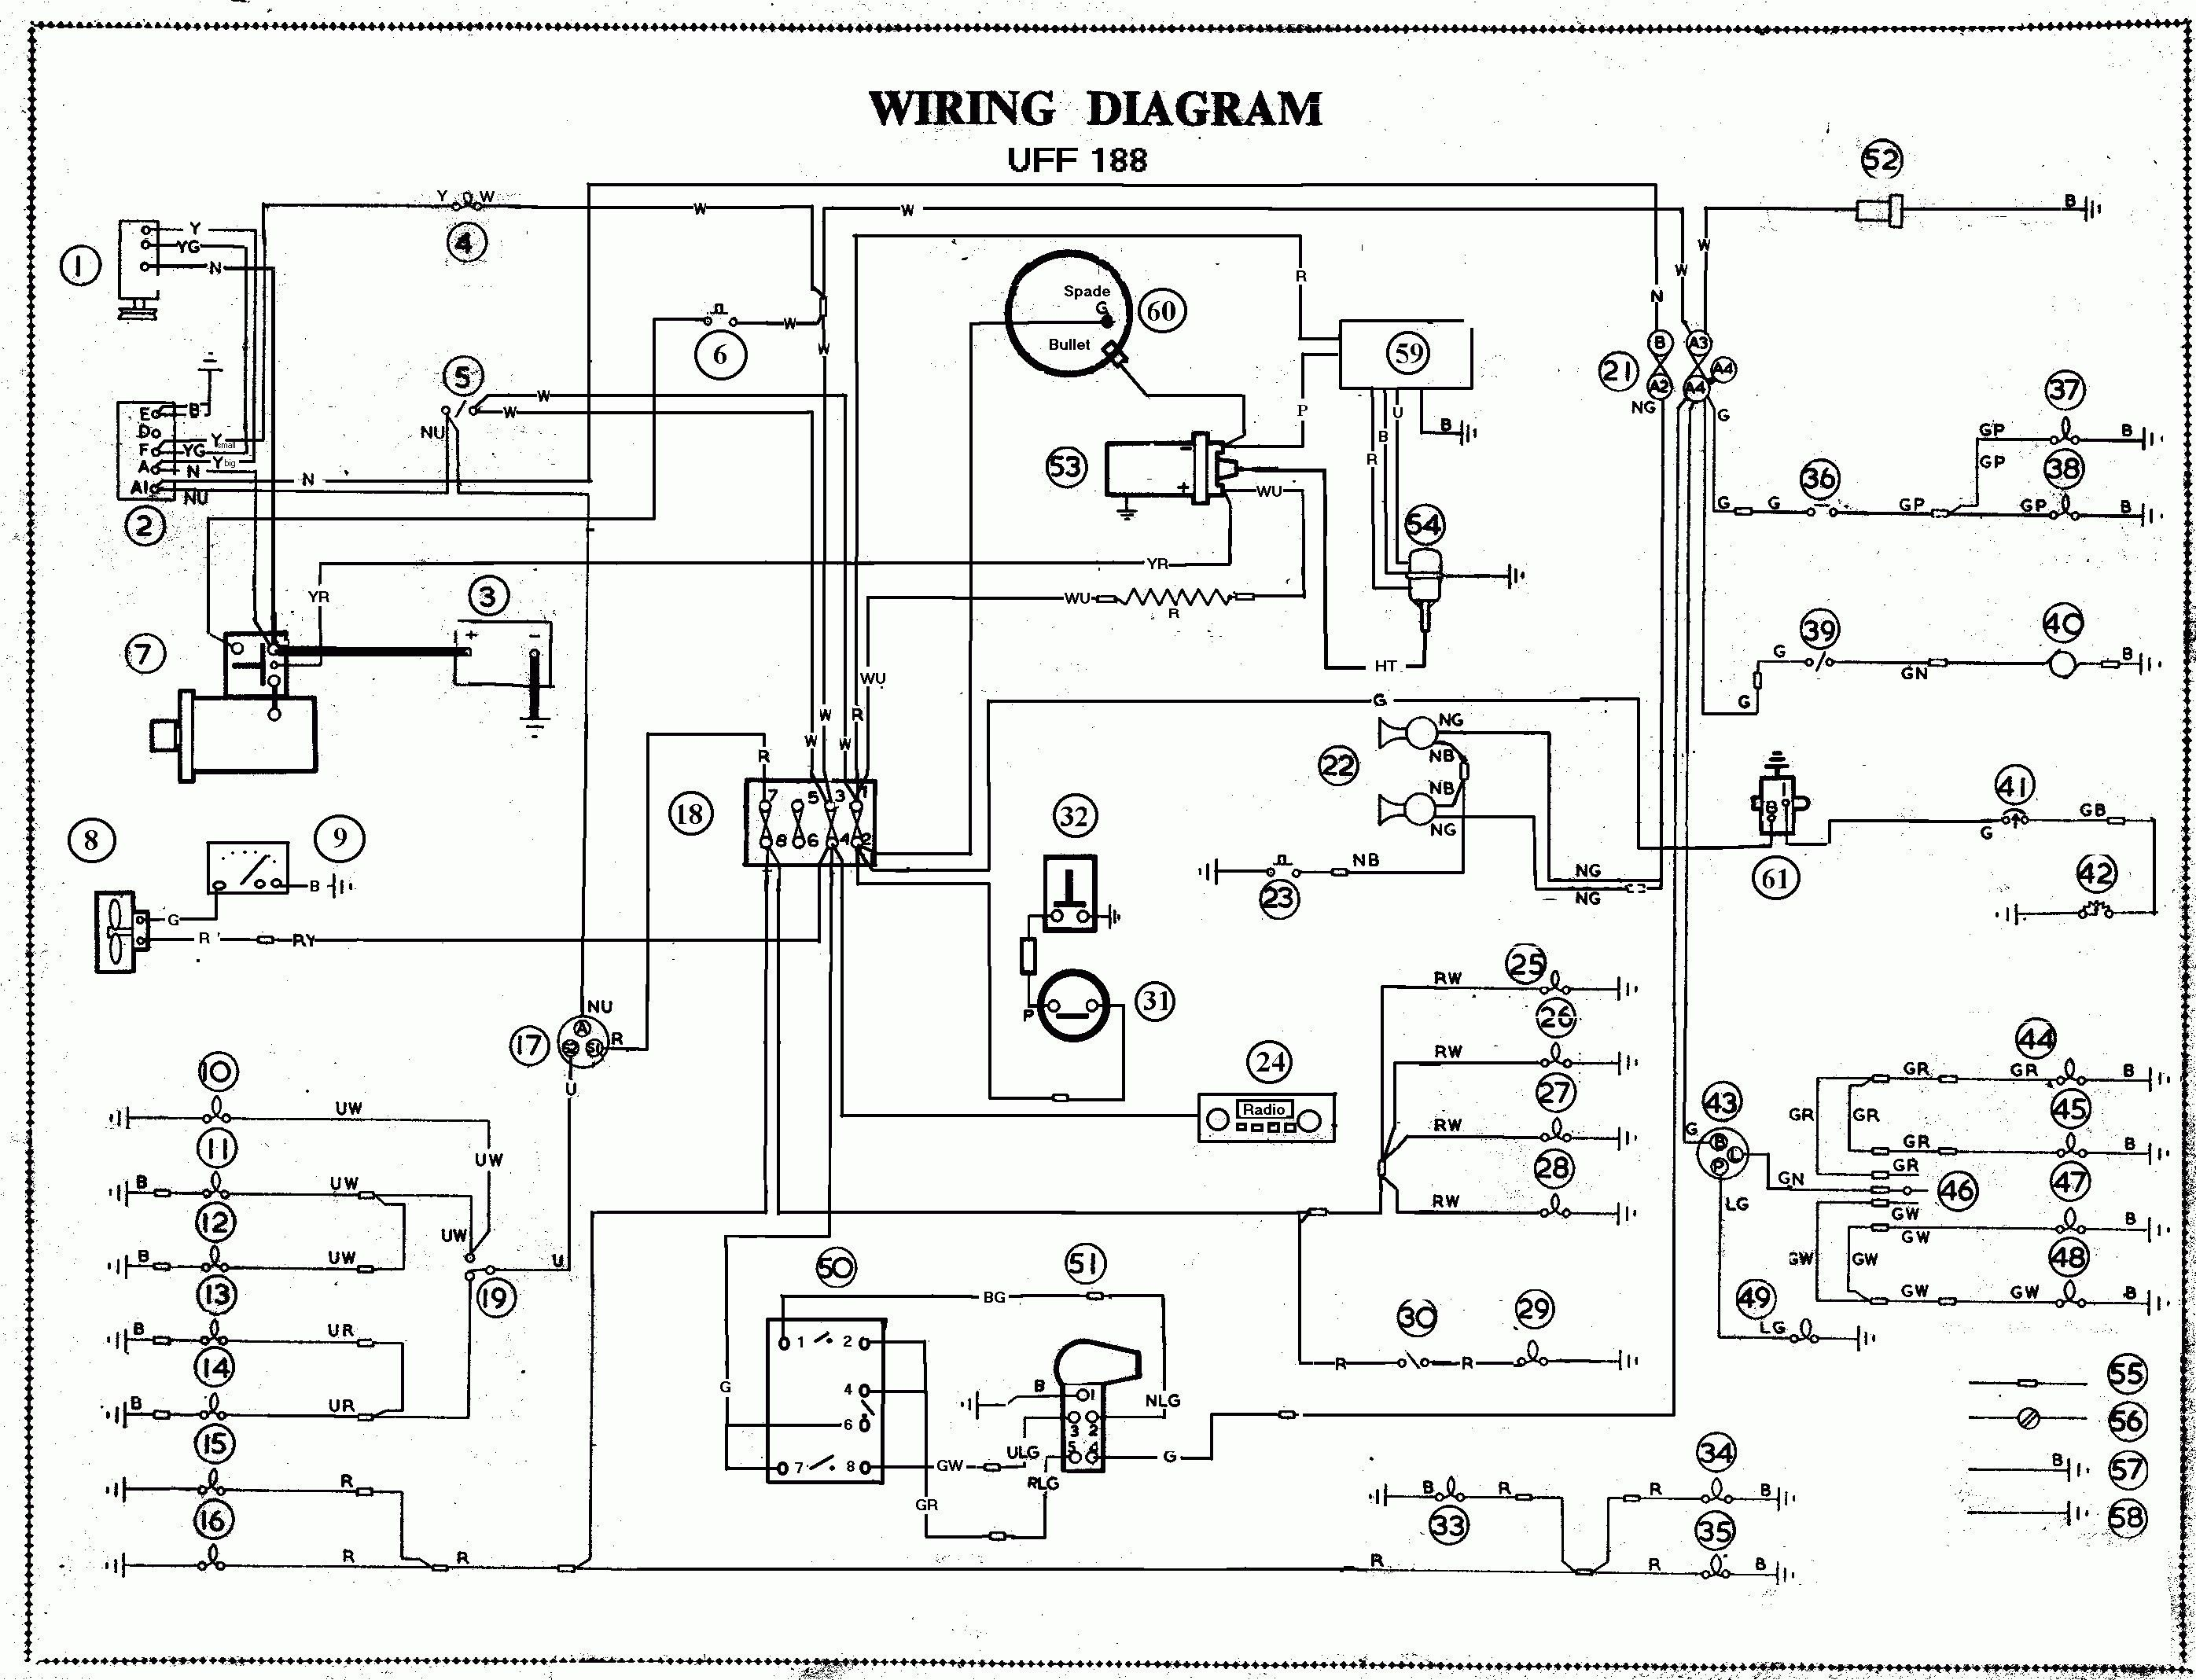 Wiring Diagram Symbols Legend